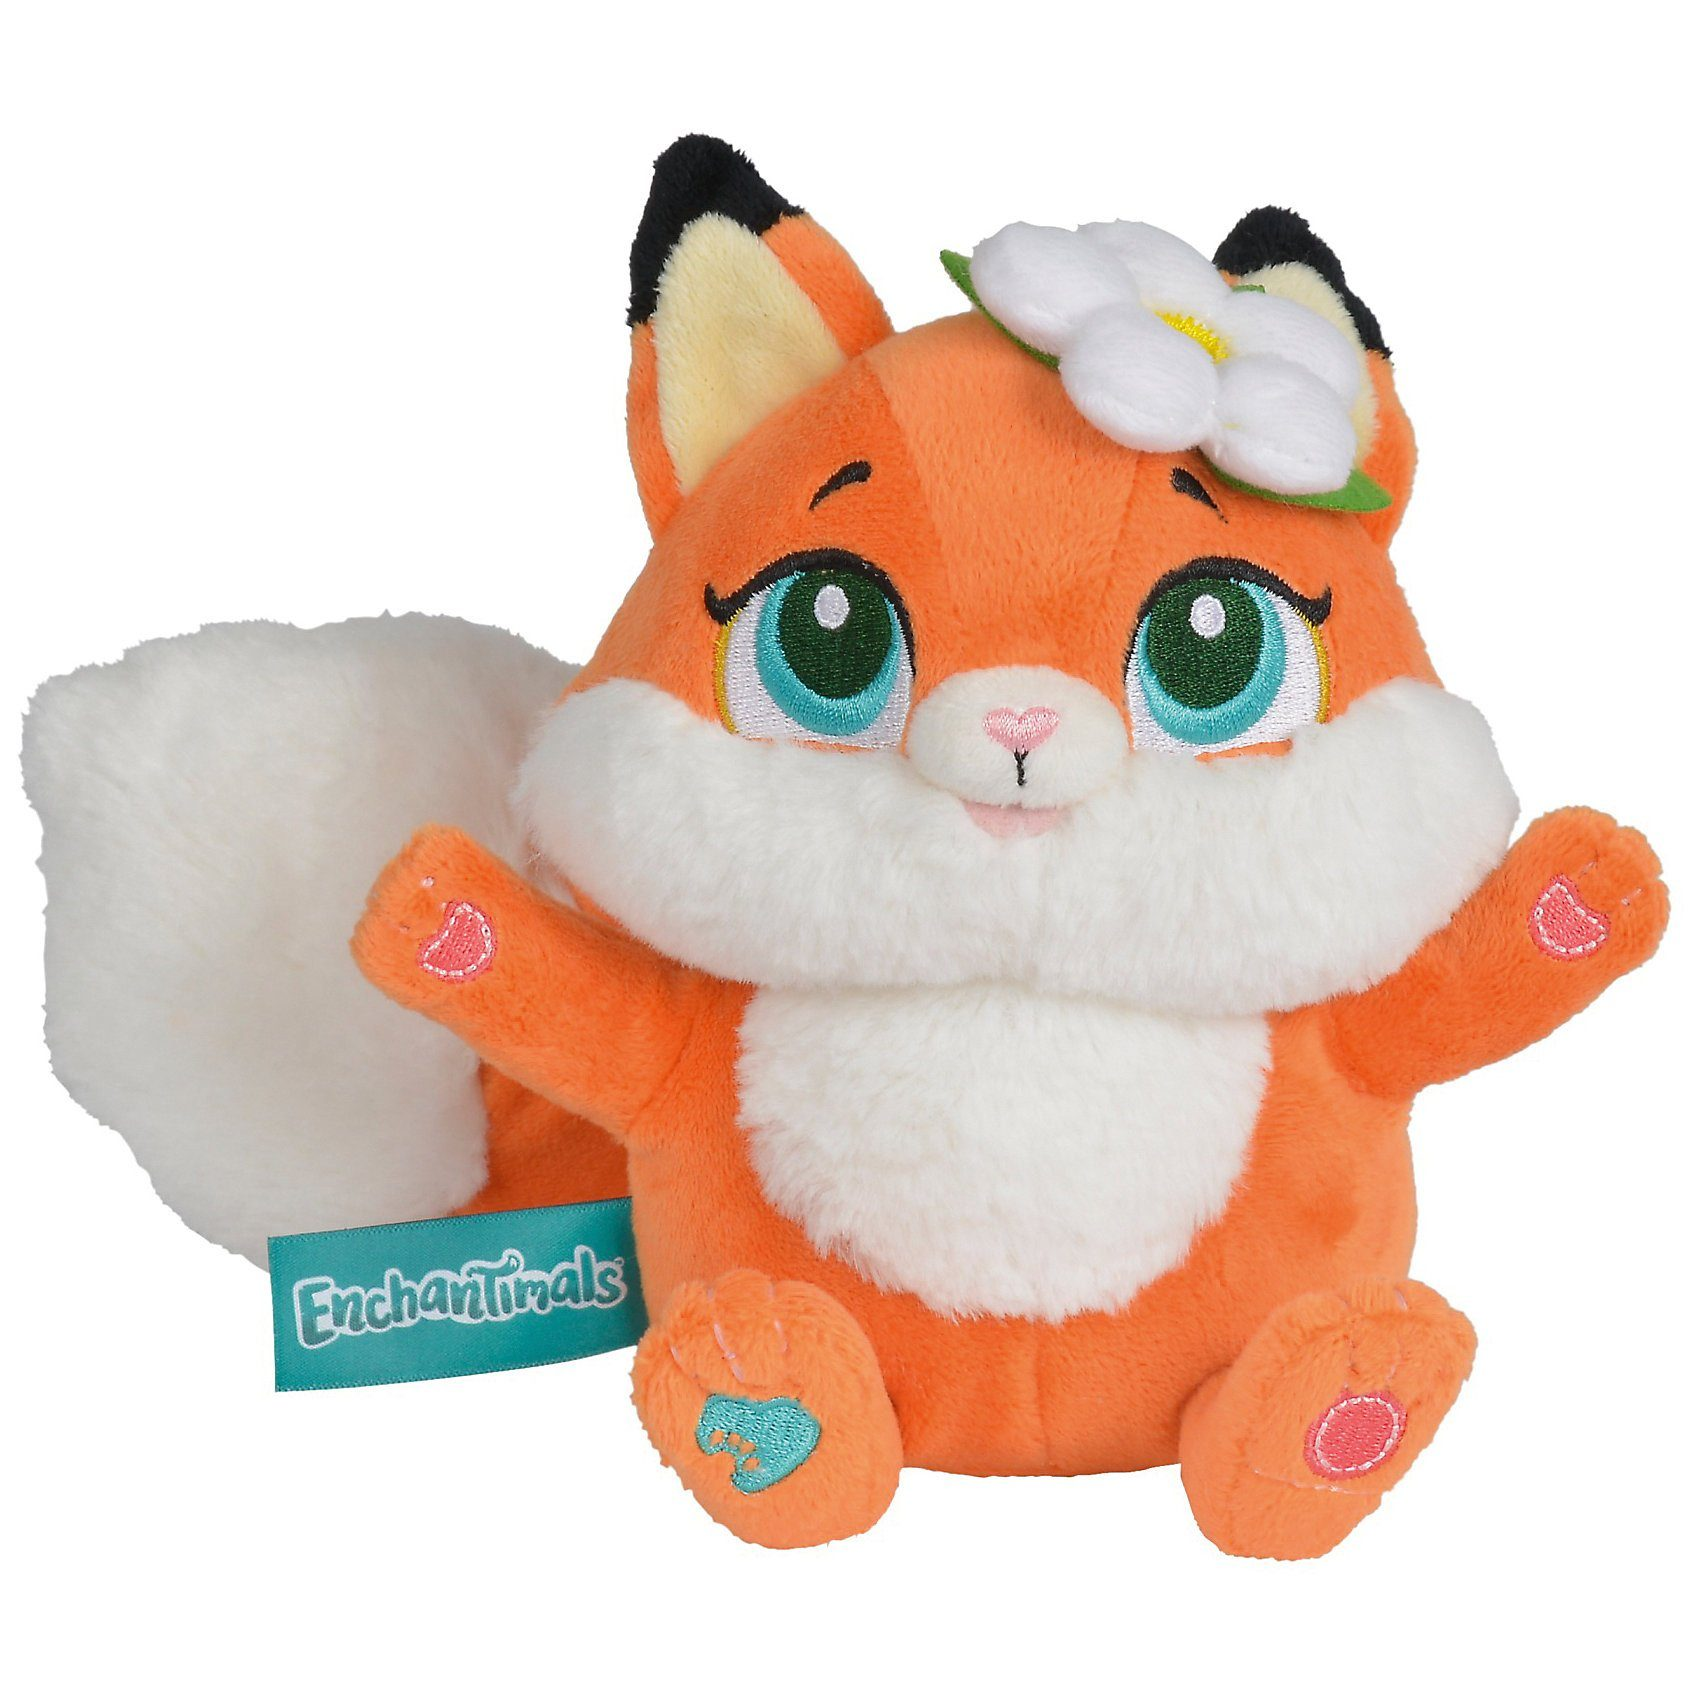 SIMBA Enchantimals, Fox Flick, 35cm